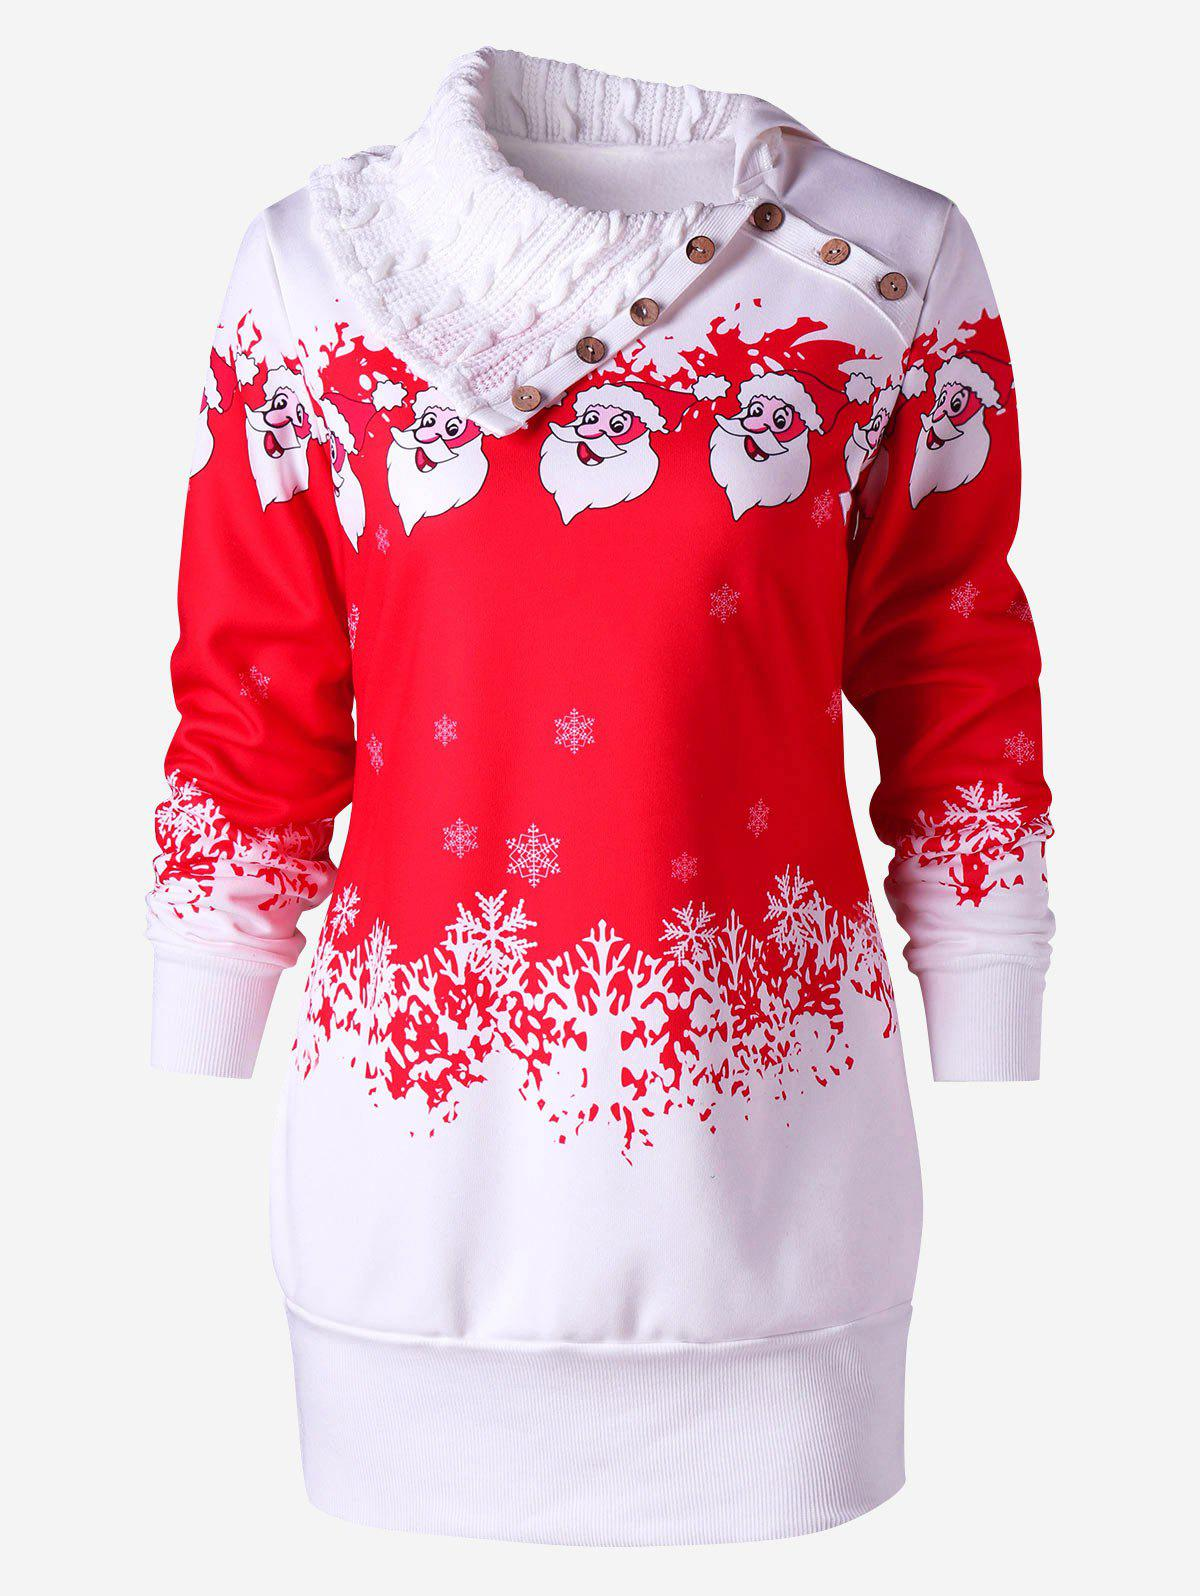 Robe Sweat-shirt Tunique en Molleton Imprimé Père Noël - Rouge XL